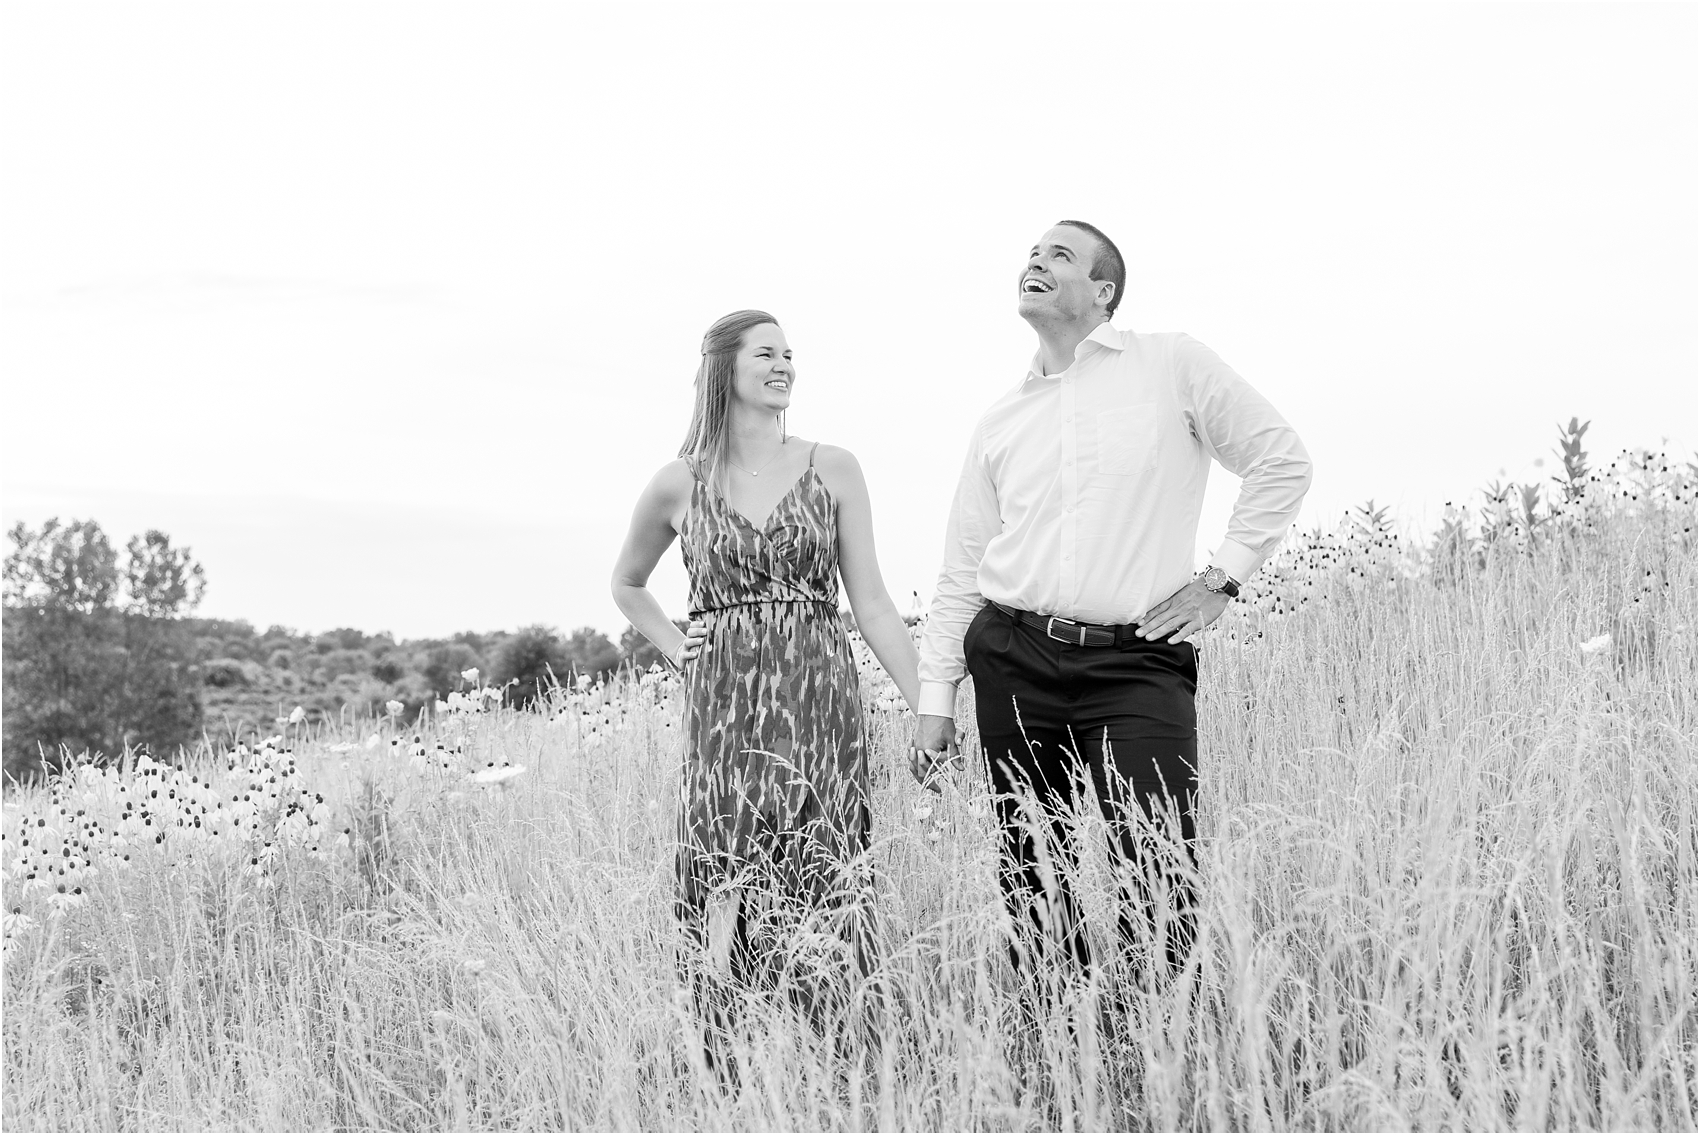 light-hearted-sunset-engagement-photos-at-the-beach-in-oregon-oh-by-courtney-carolyn-photography_0017.jpg